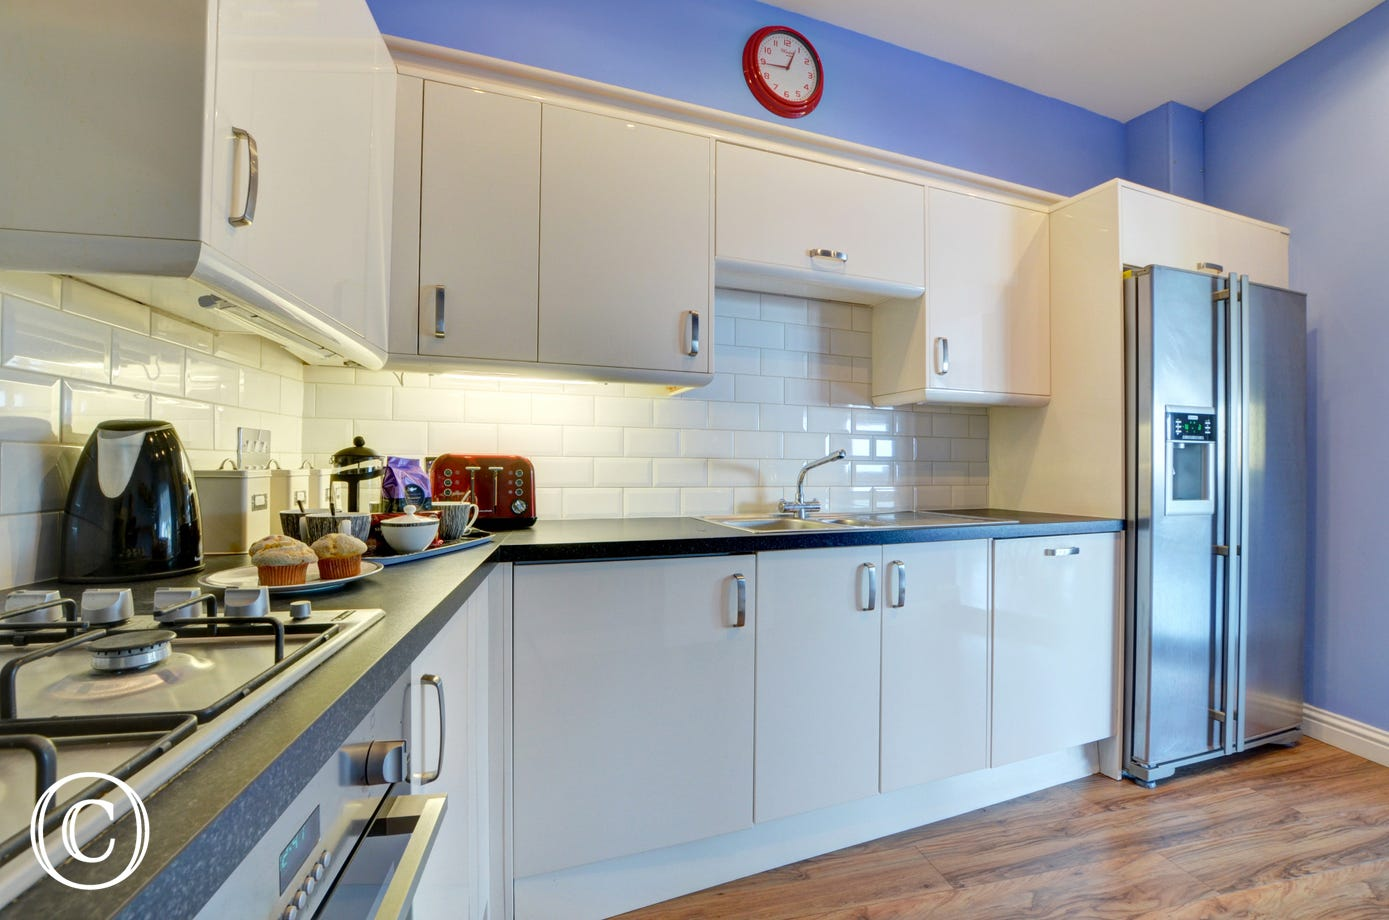 Plenty of space to prepare meals in the lovely kitchen